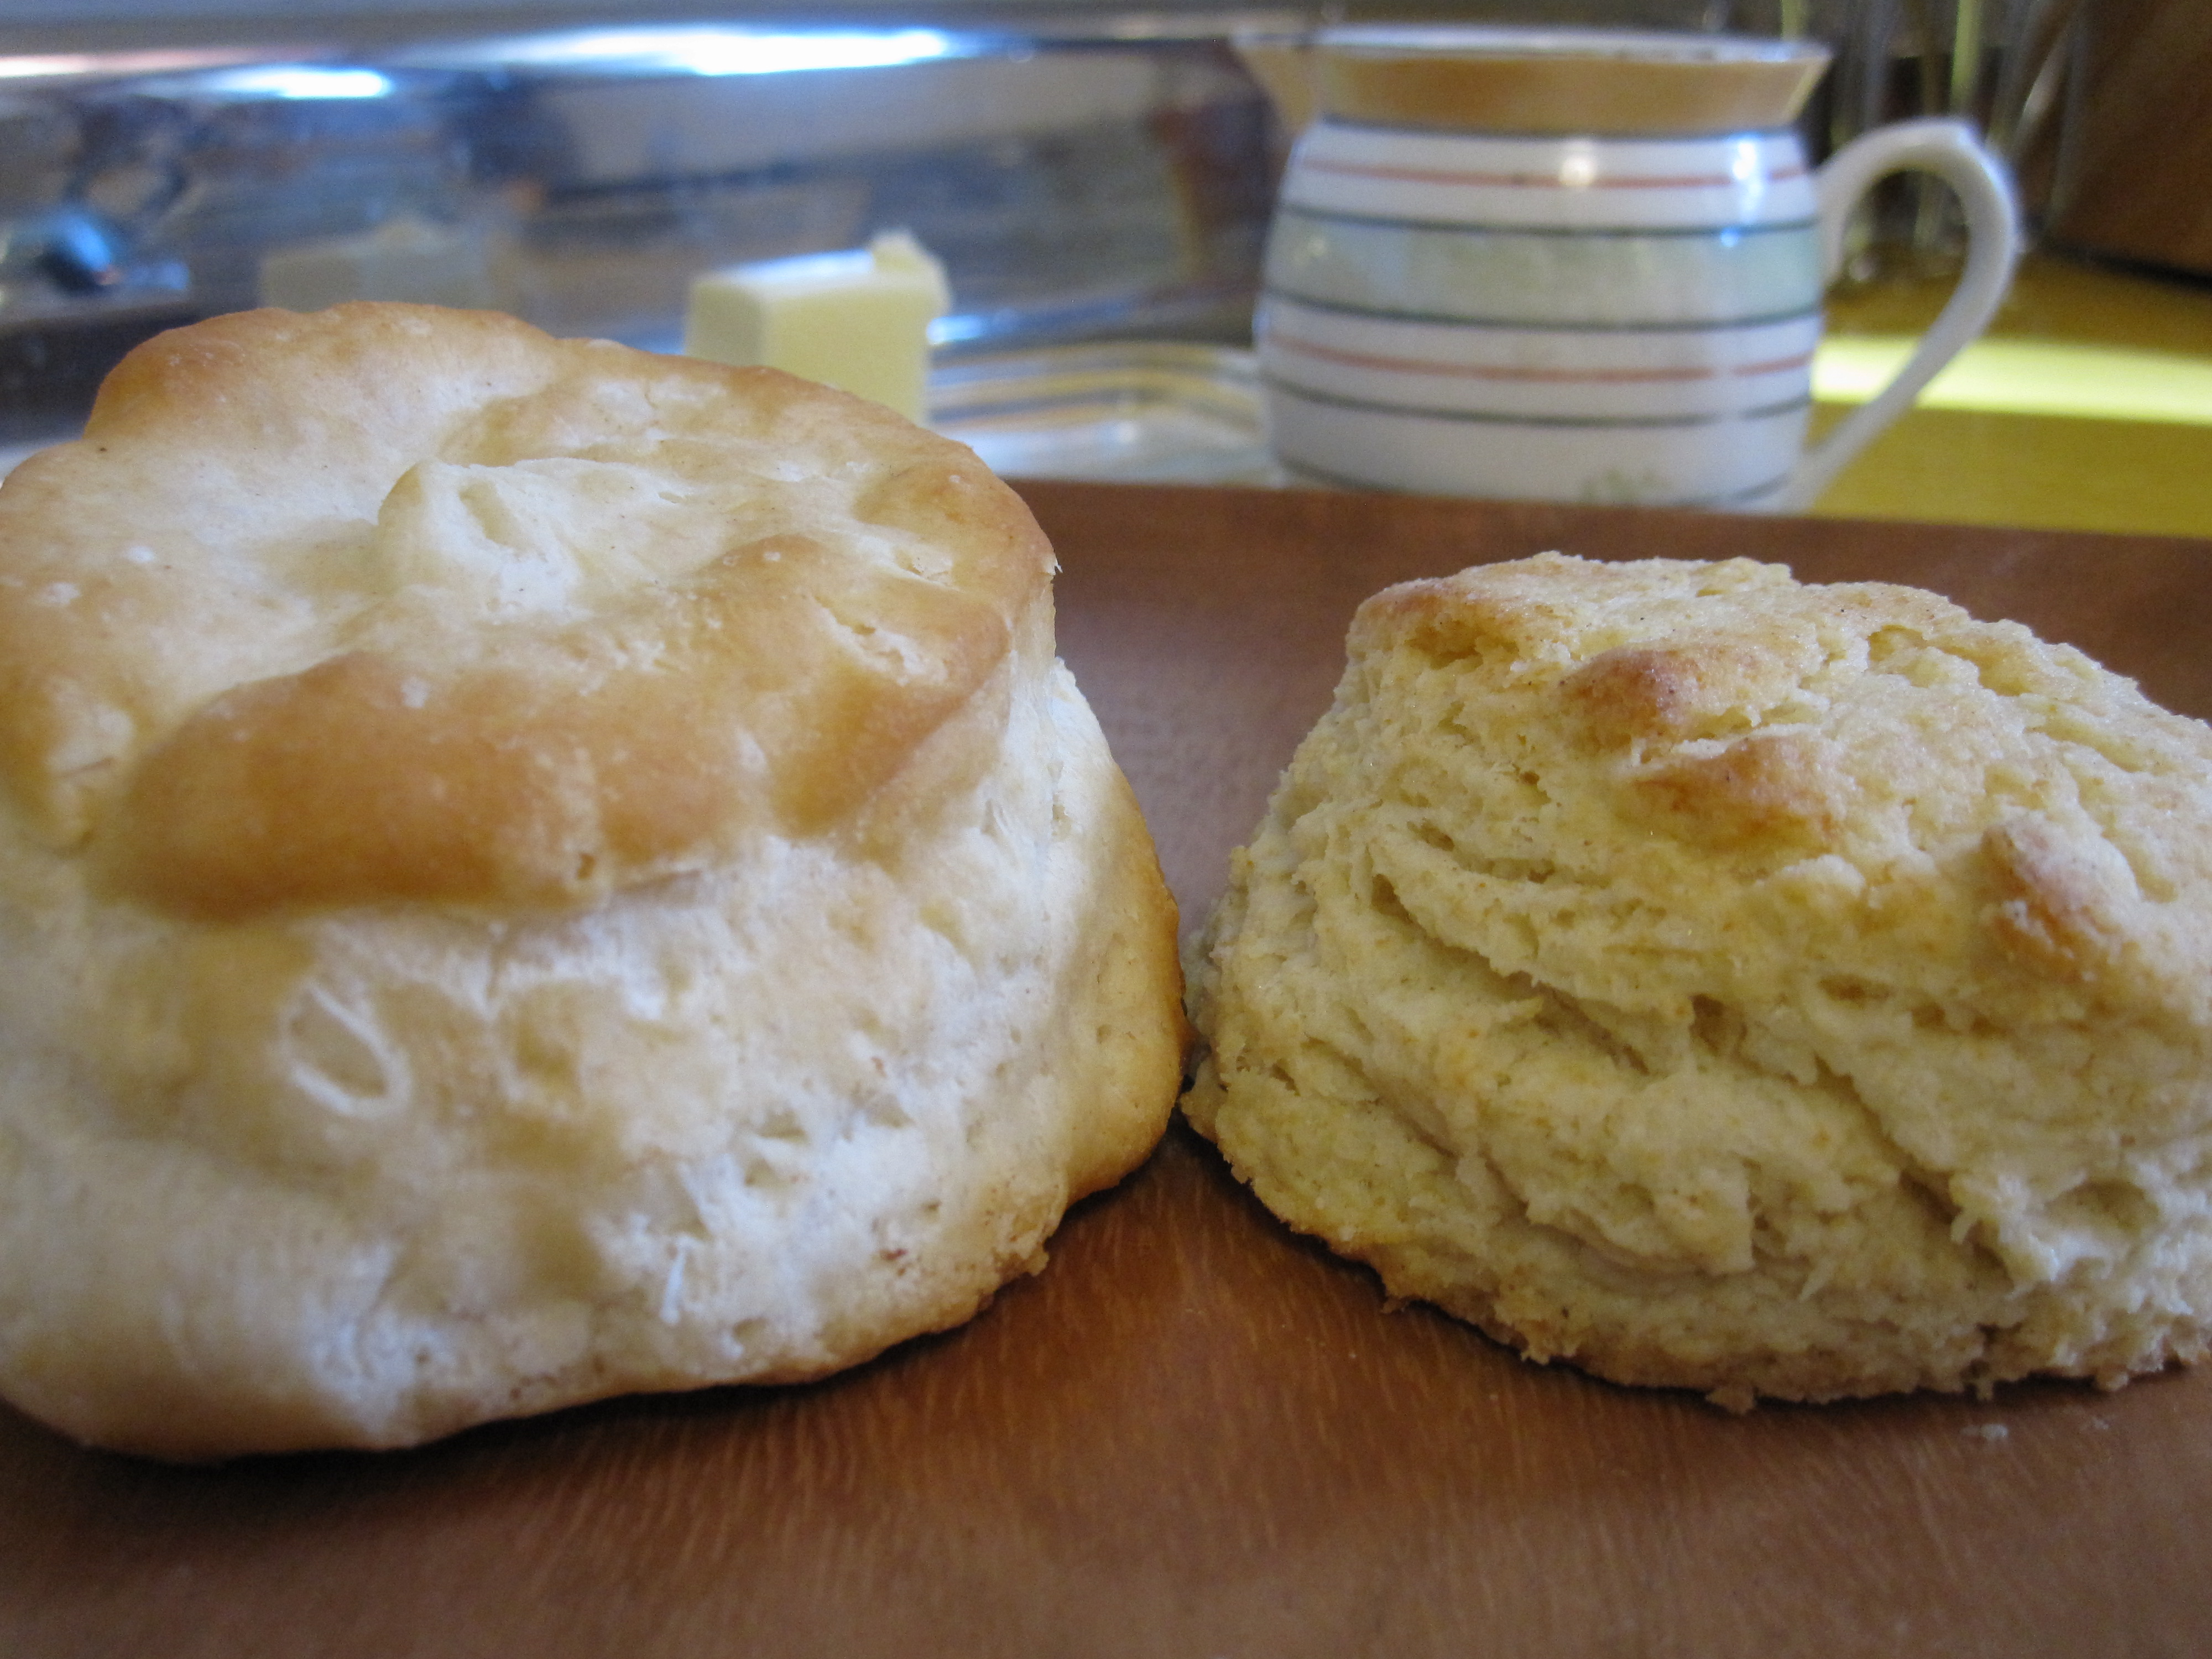 Follow step-by-step, photo illustrated instructions for making these mouth watering Southern Buttermilk Biscuits. We're making them from scratch, just the way mama taught us years ago.